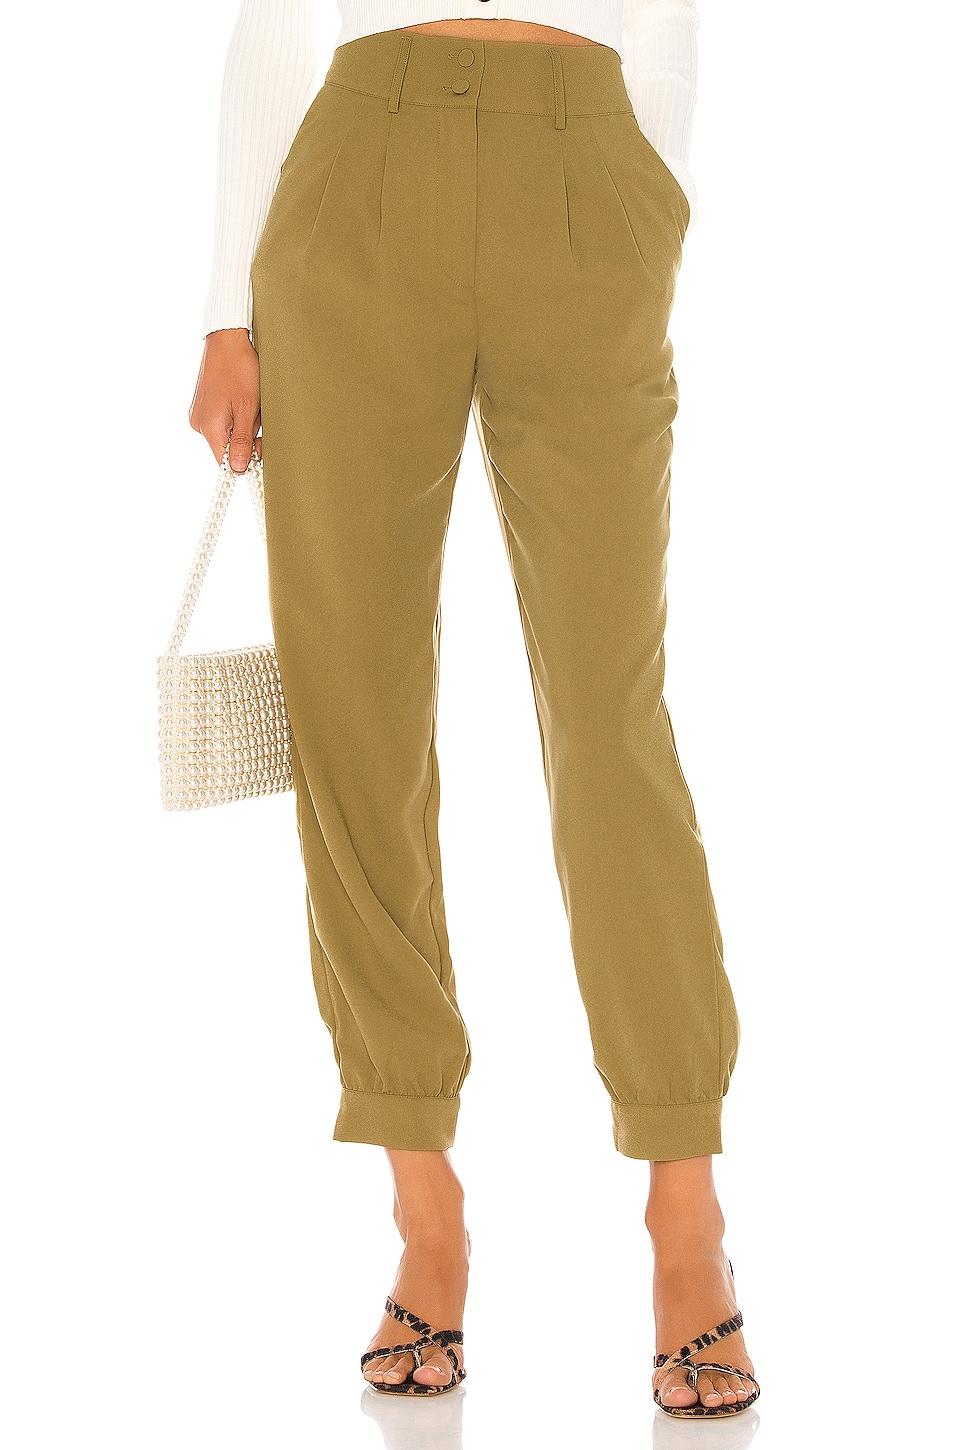 Lovers + Friends Elliot Pant in Army Green